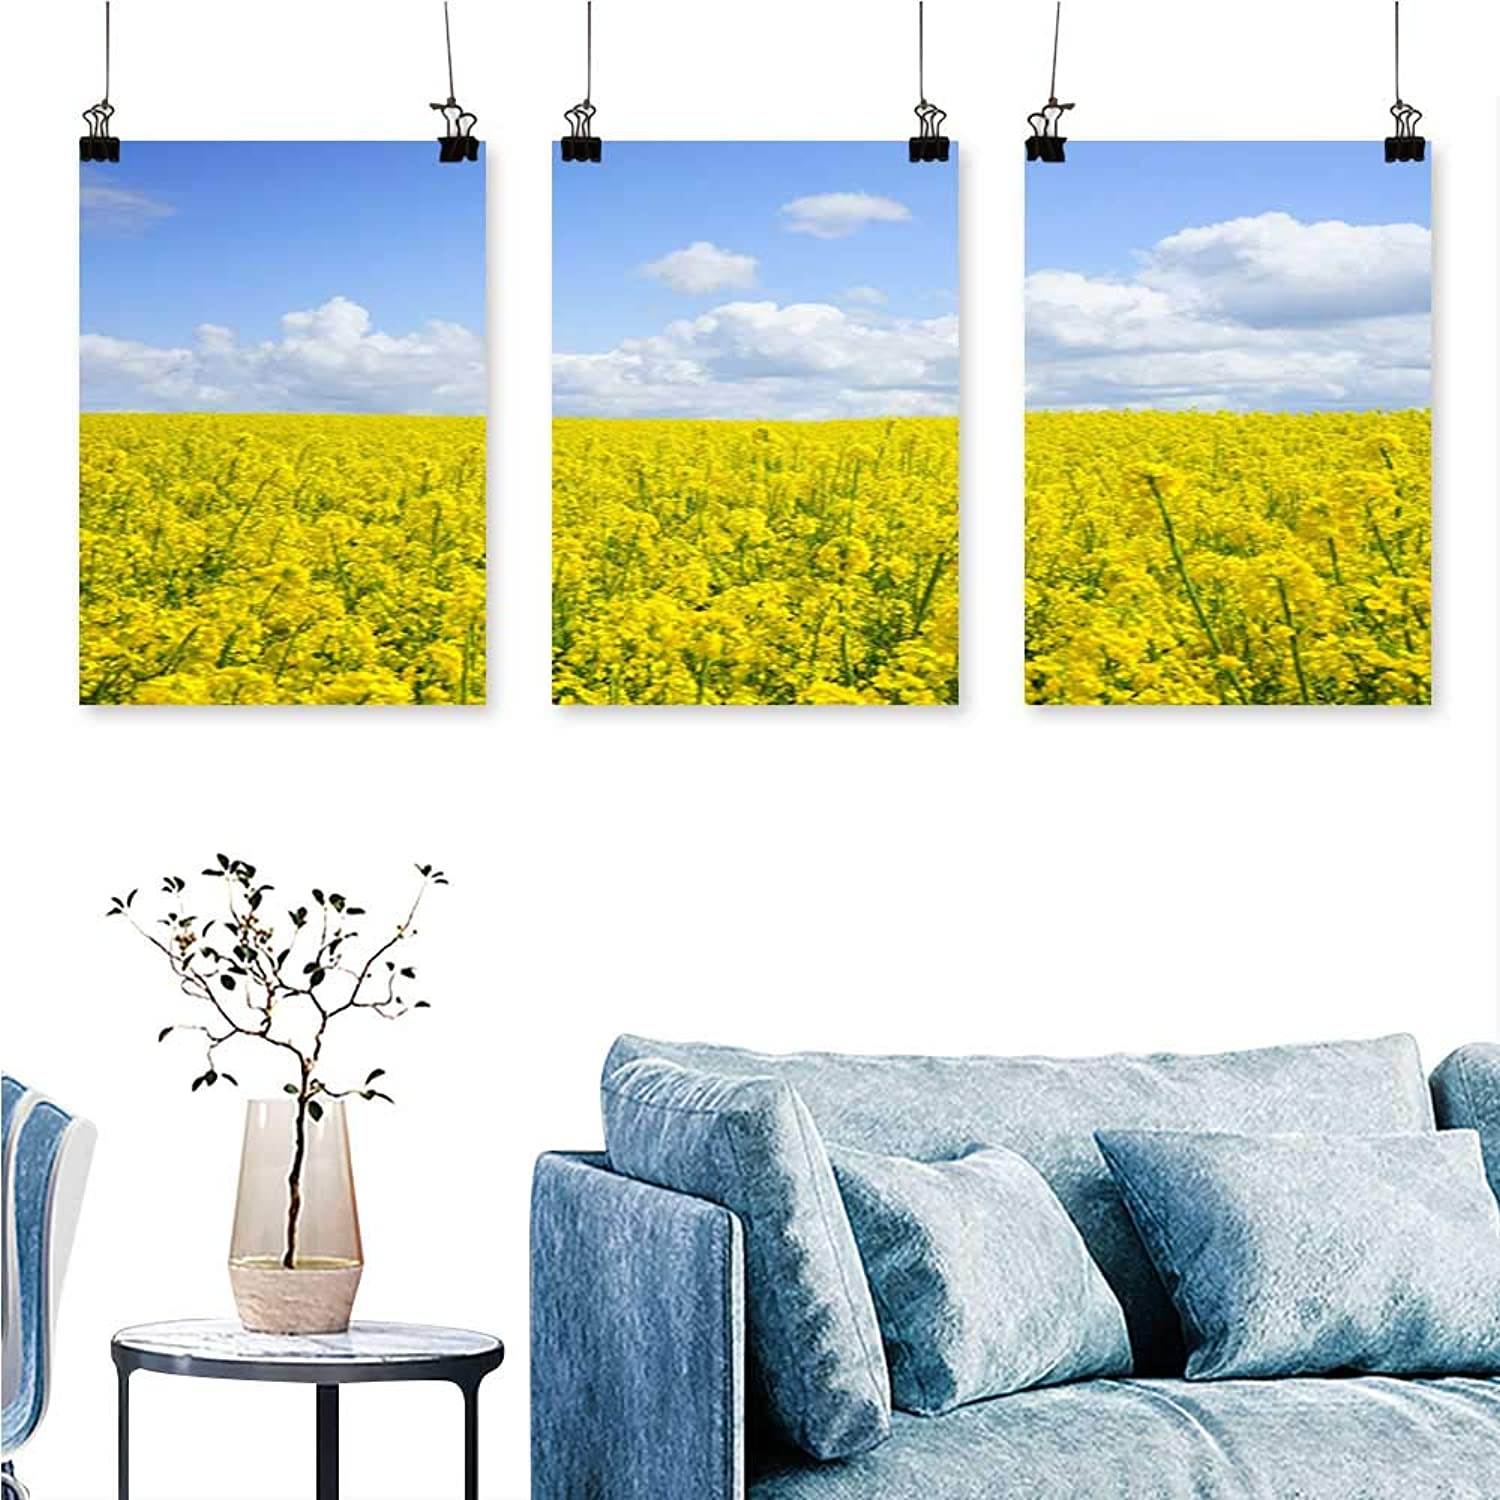 SCOCICI1588 3 Panels Triptych an Endless Rape Field for Home Modern Decoration No Frame 30 INCH X 60 INCH X 3PCS